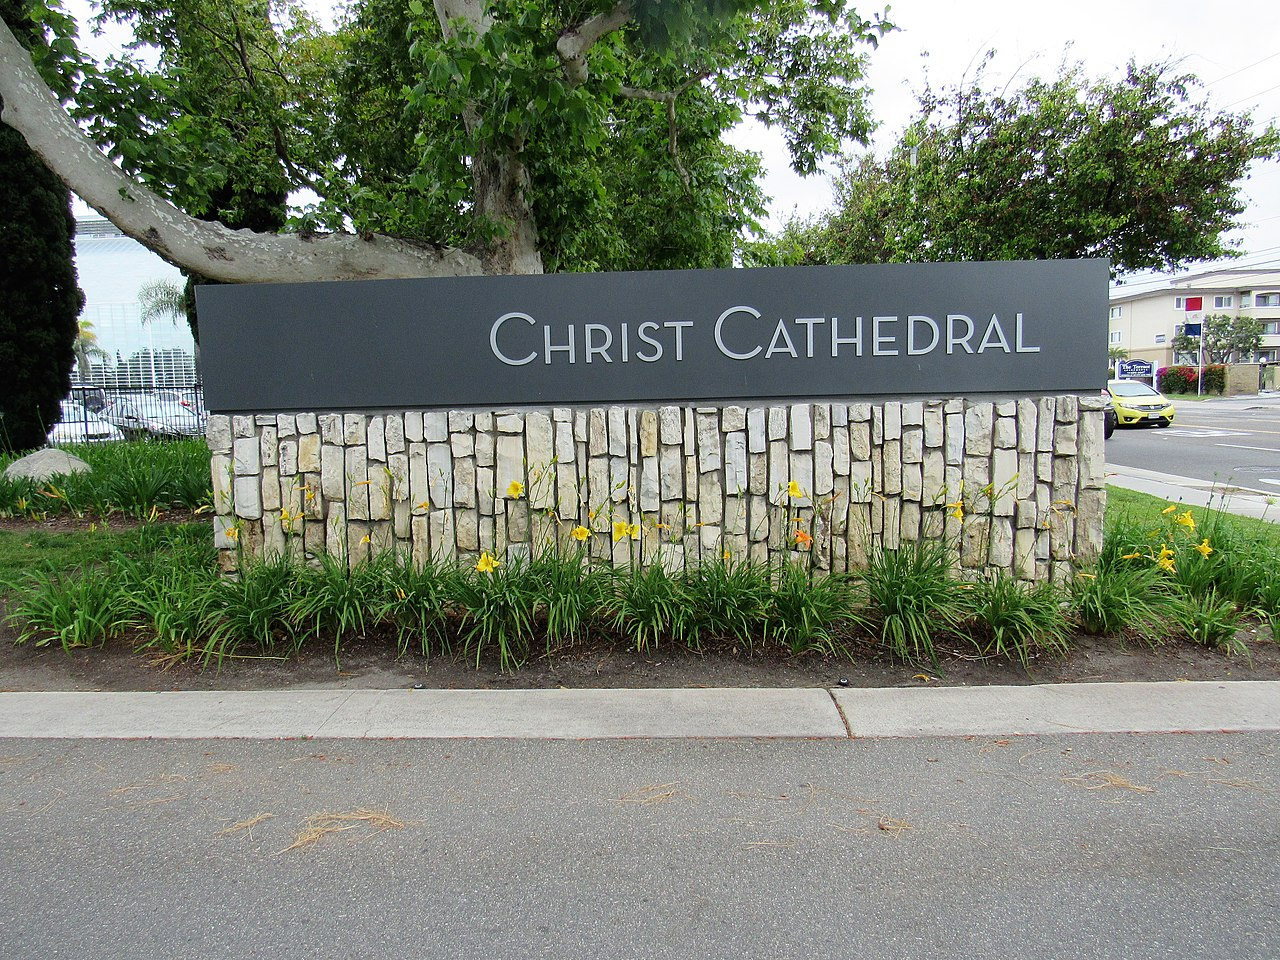 1280px-Christ_Cathedral_sign_-_Garden_Grove,_California.jpg